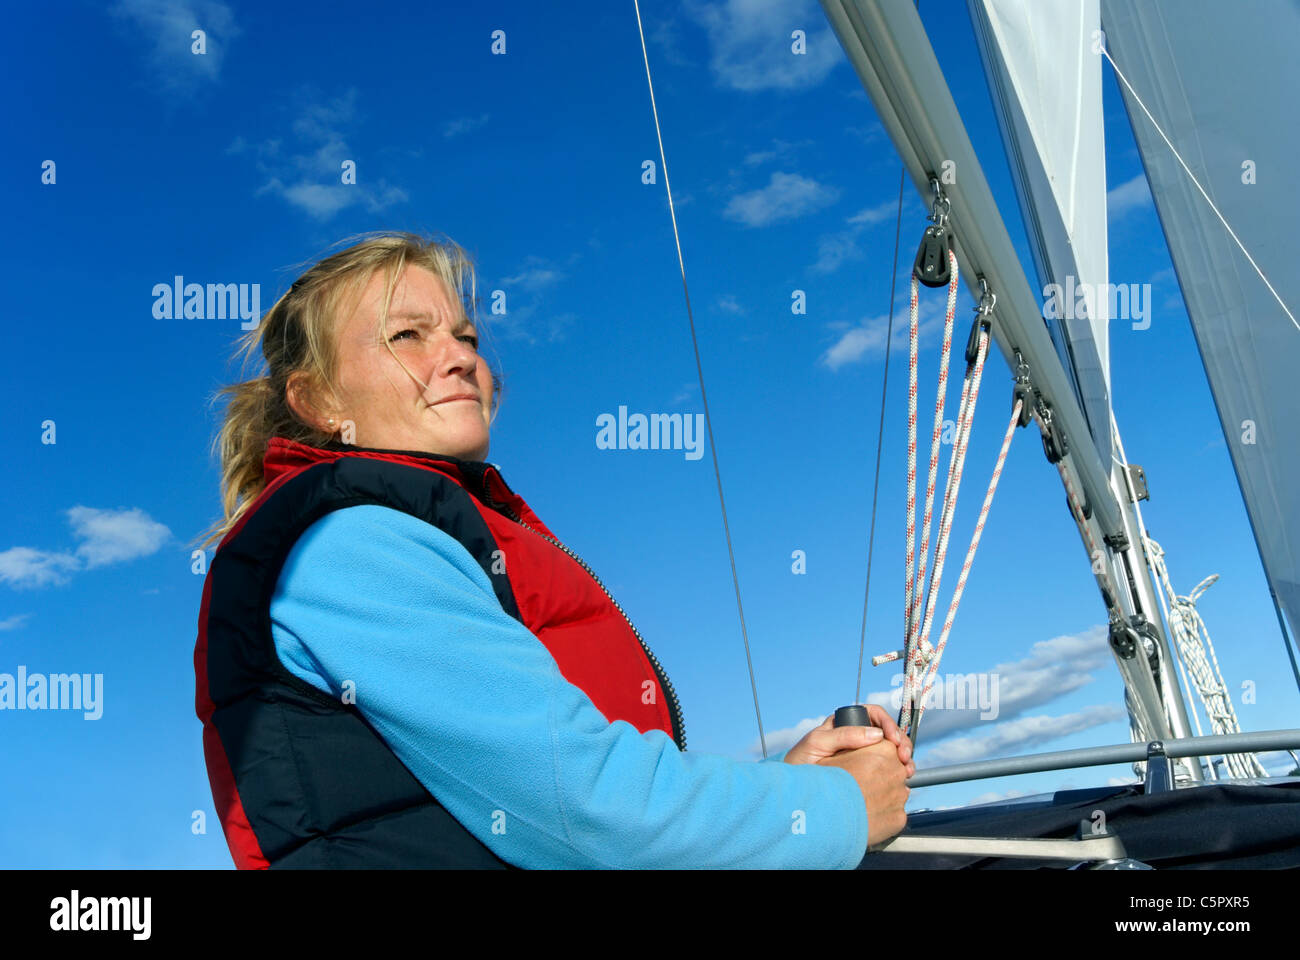 Blond woman sailing yacht (Model Release) Stock Photo